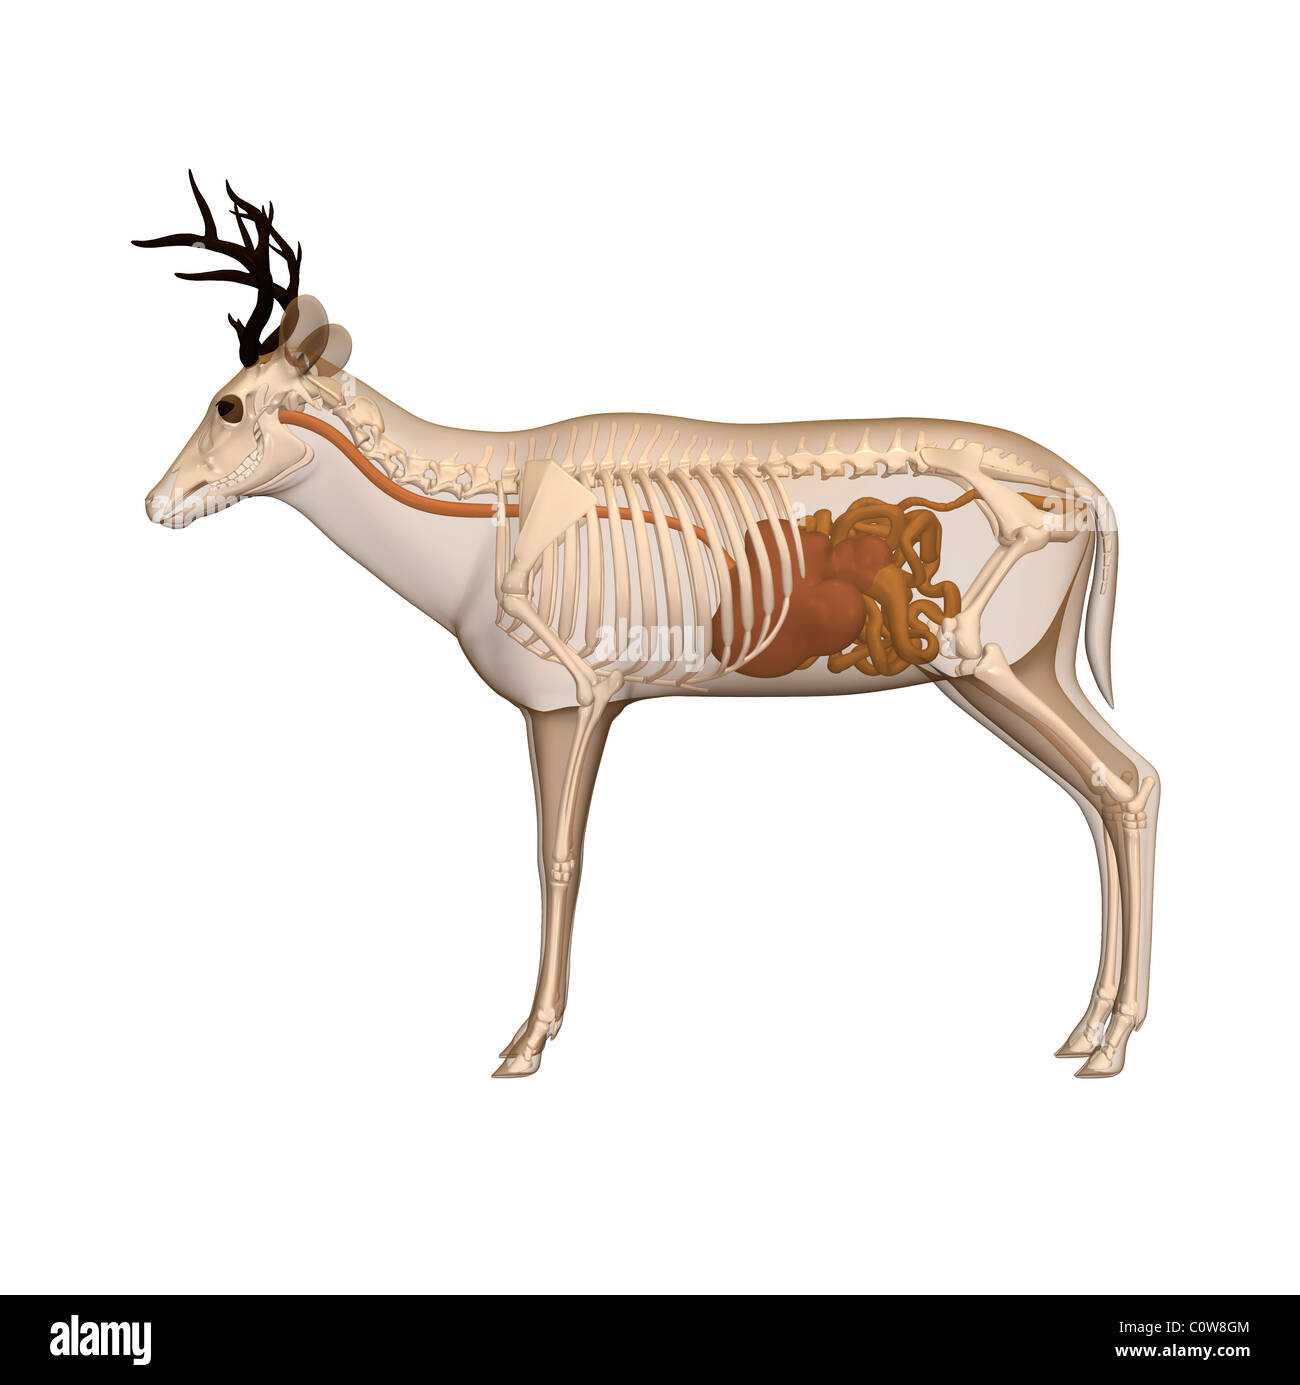 deer anatomy digestion stomach transparent body Stock Photo ...